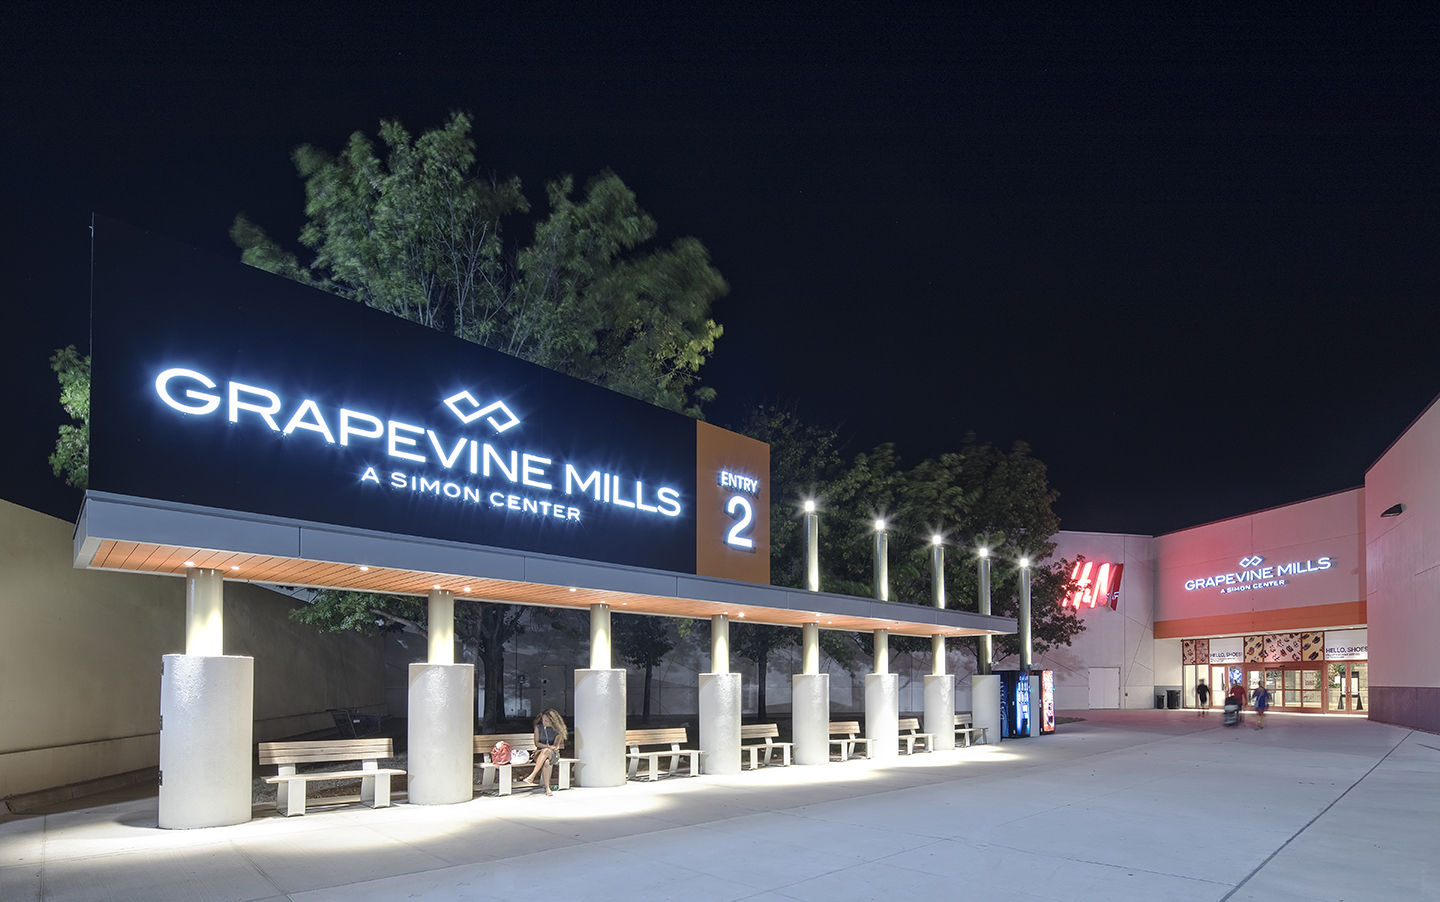 About Grapevine Mills® - A Shopping Center in Grapevine, TX ...